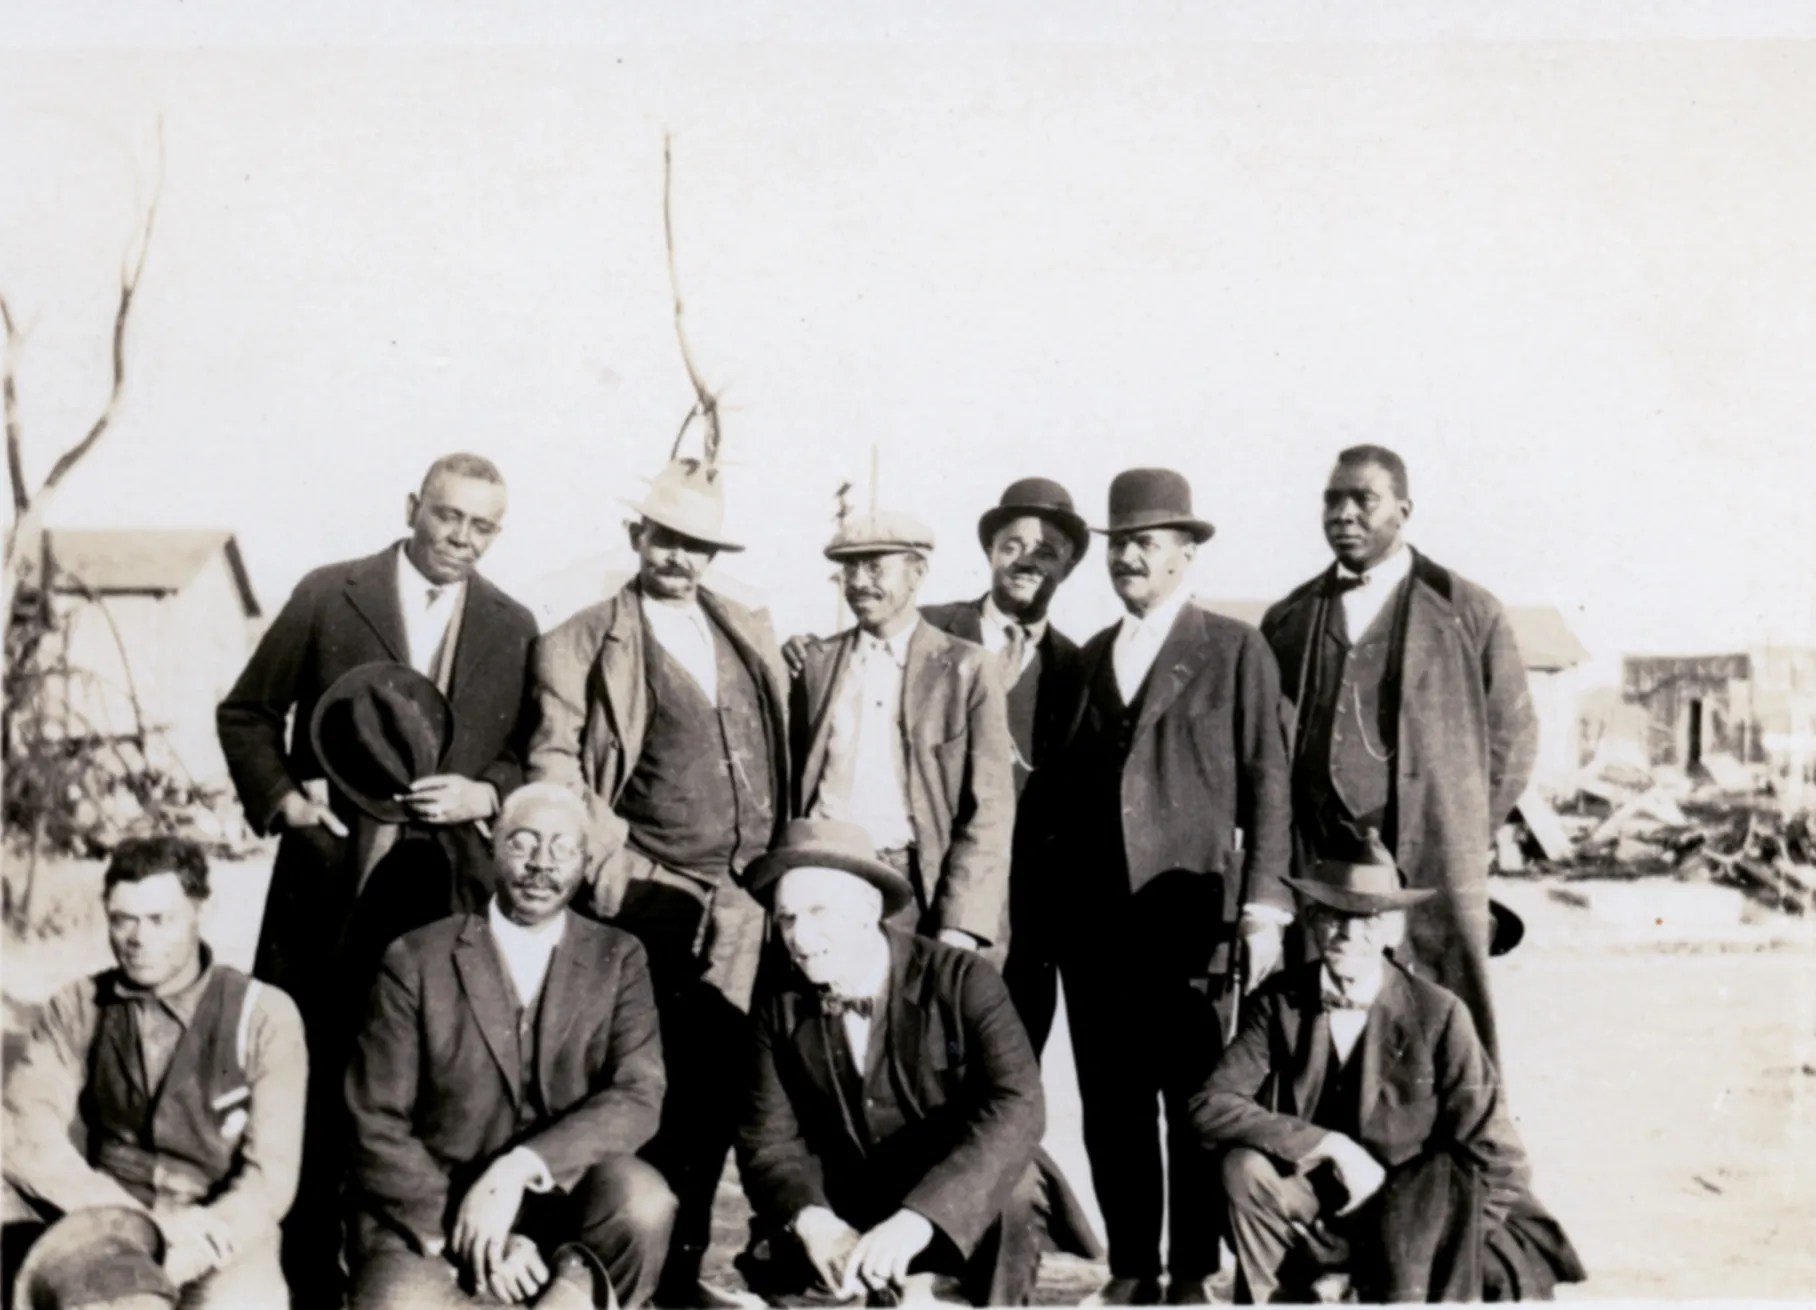 The members of the Colored Citizens Relief Committee and East End Welfare Board following the 1921 Tulsa Race Massacre.  The individuals standing include (left to right) Williams, Phillips, Esta